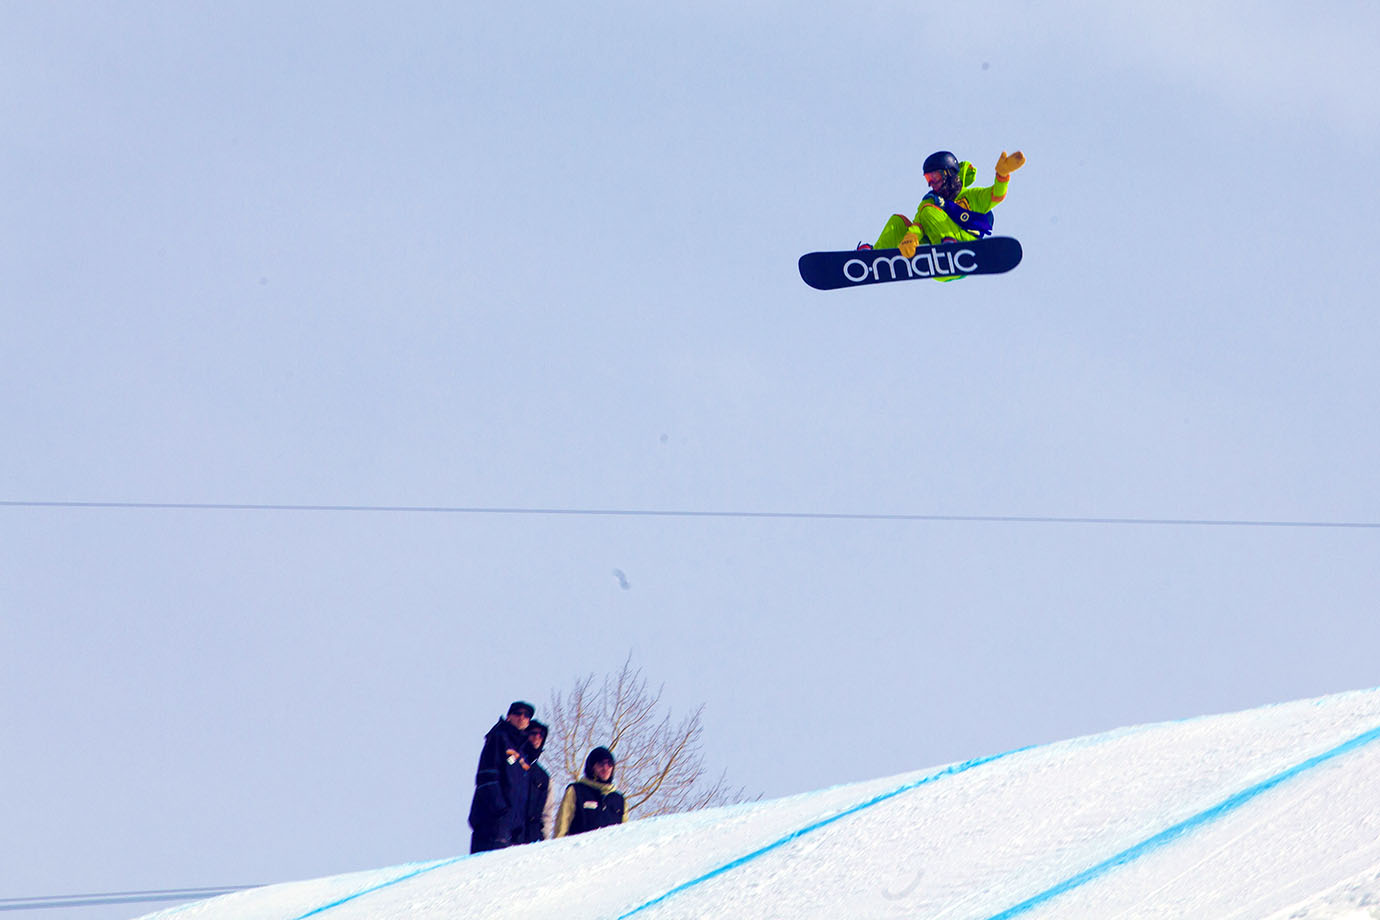 Eric Beauchemin competed wearing his lucky Teenage Mutant Ninja Turtles one-piece. The gesture was well received: Eric took second in the Slopestyle event and was given a full pizza pie after his final run.